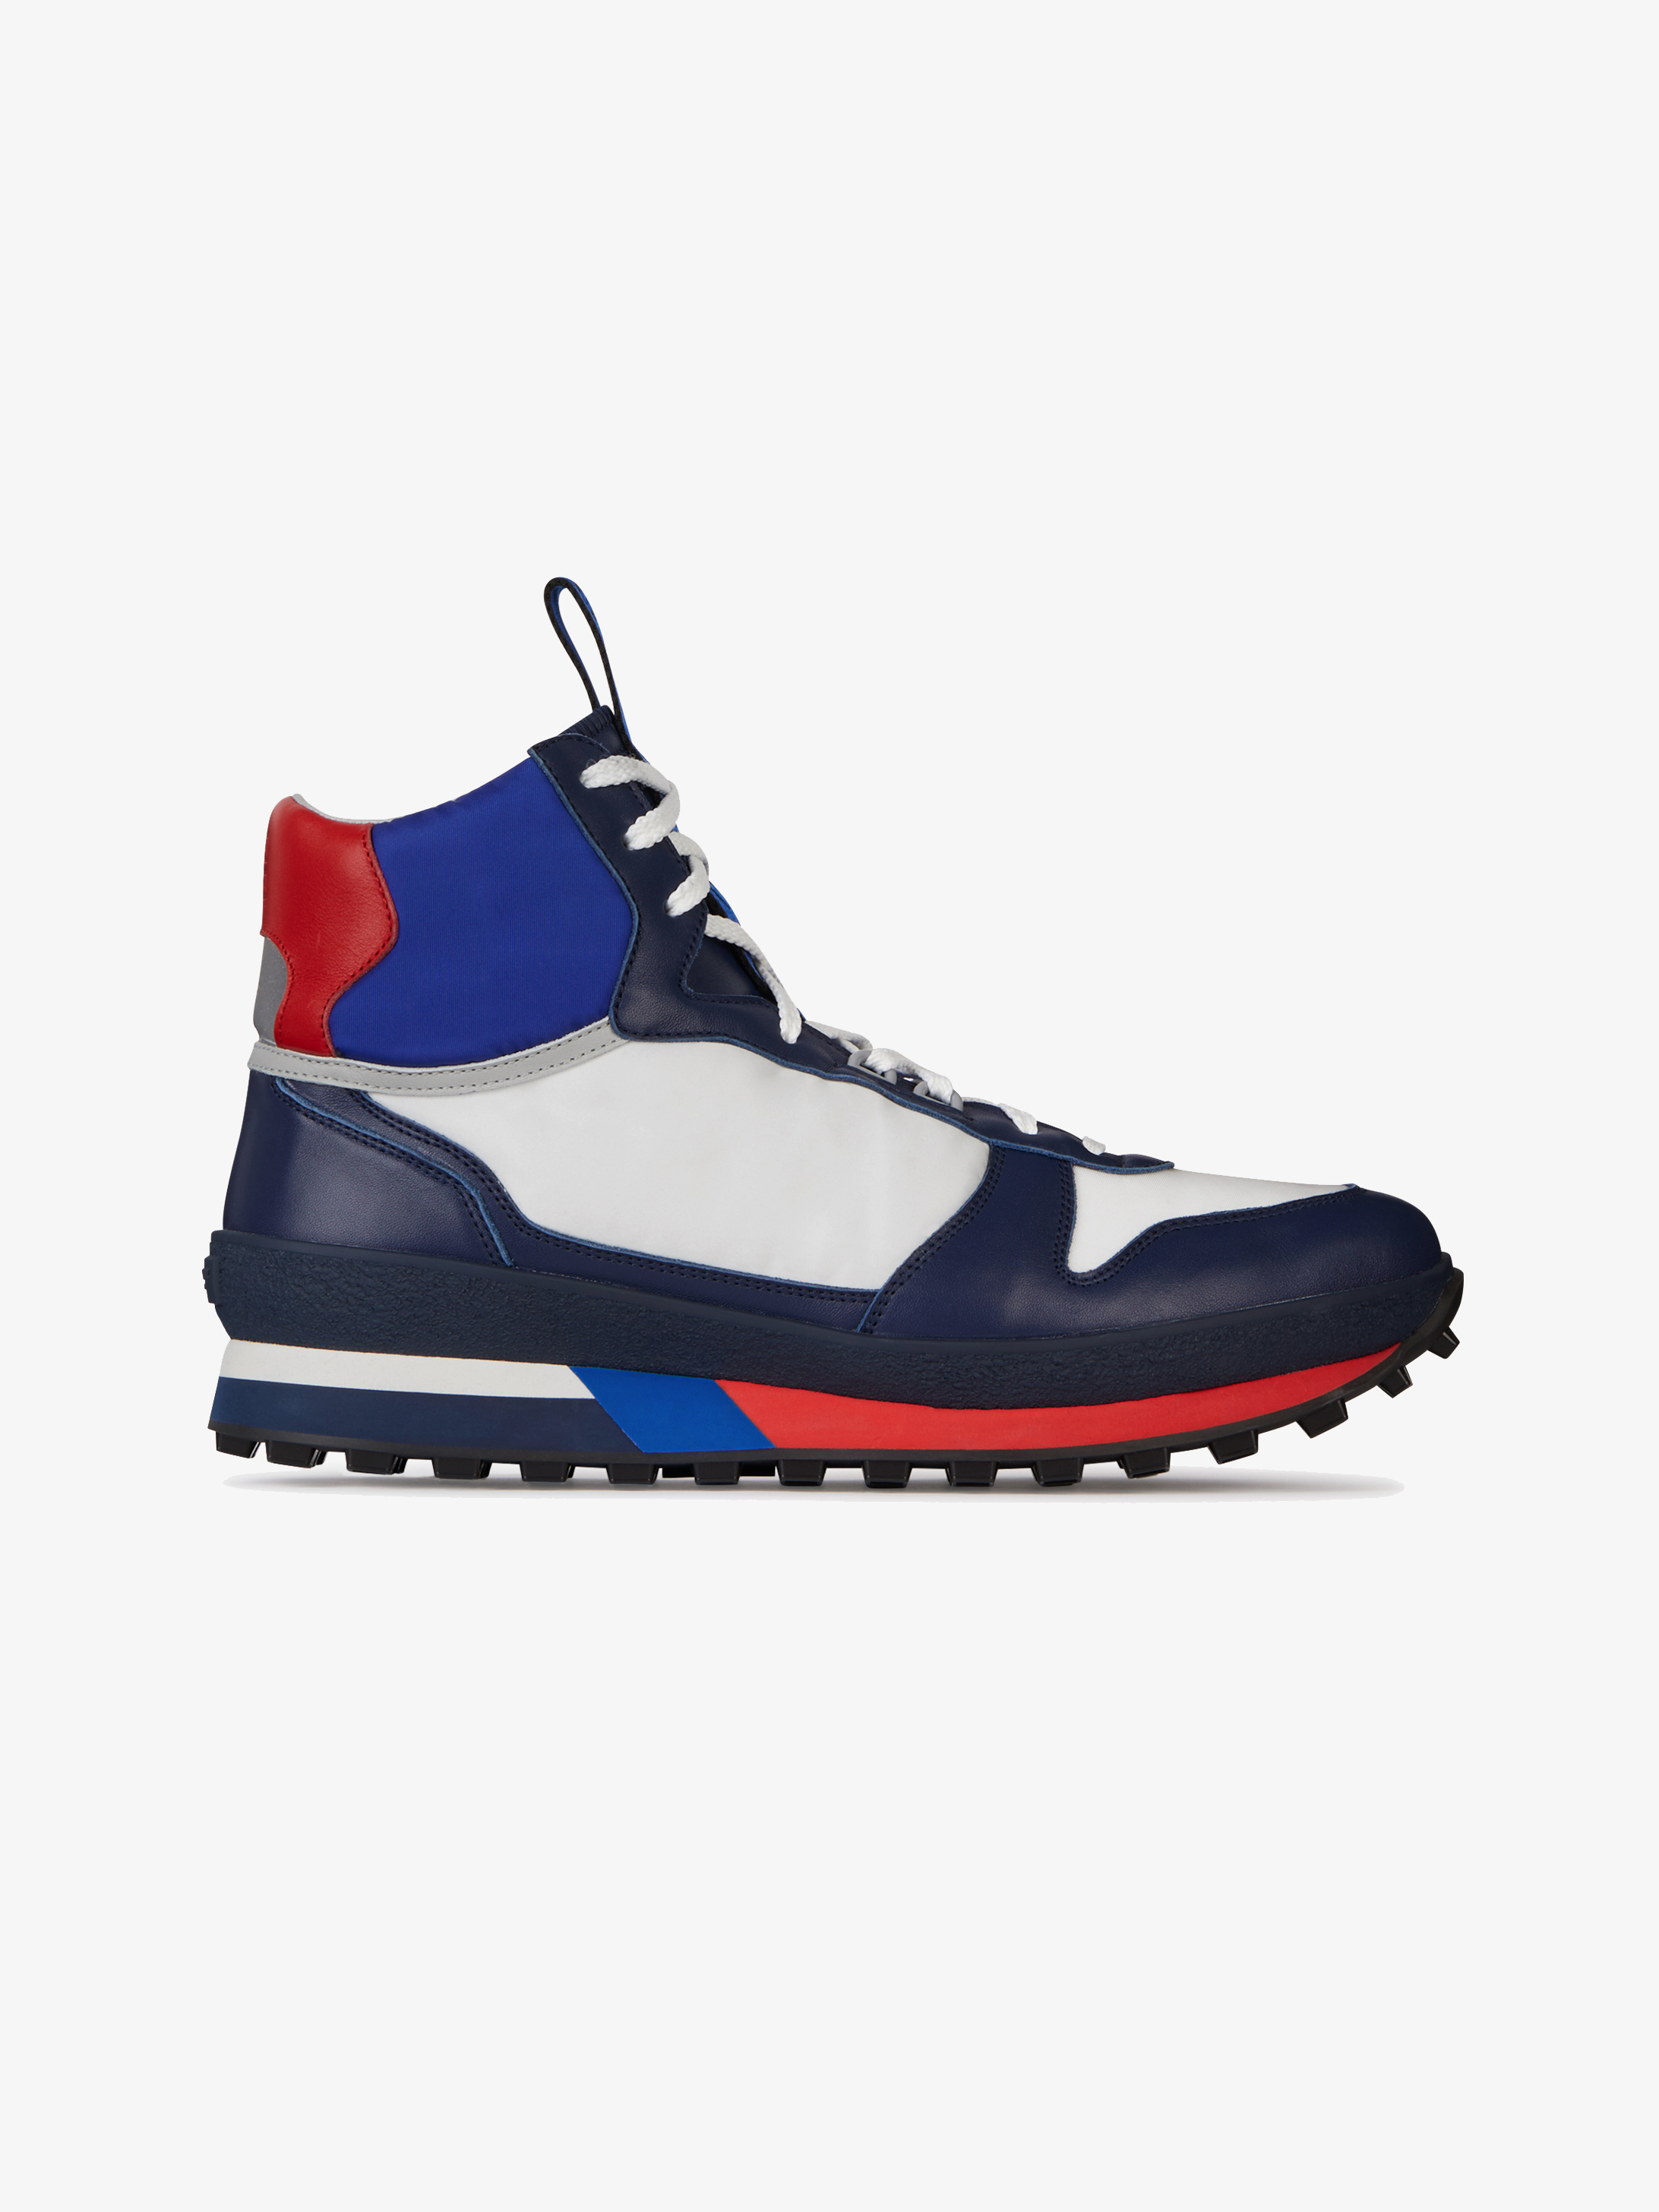 Runner sneakers in leather and nylon